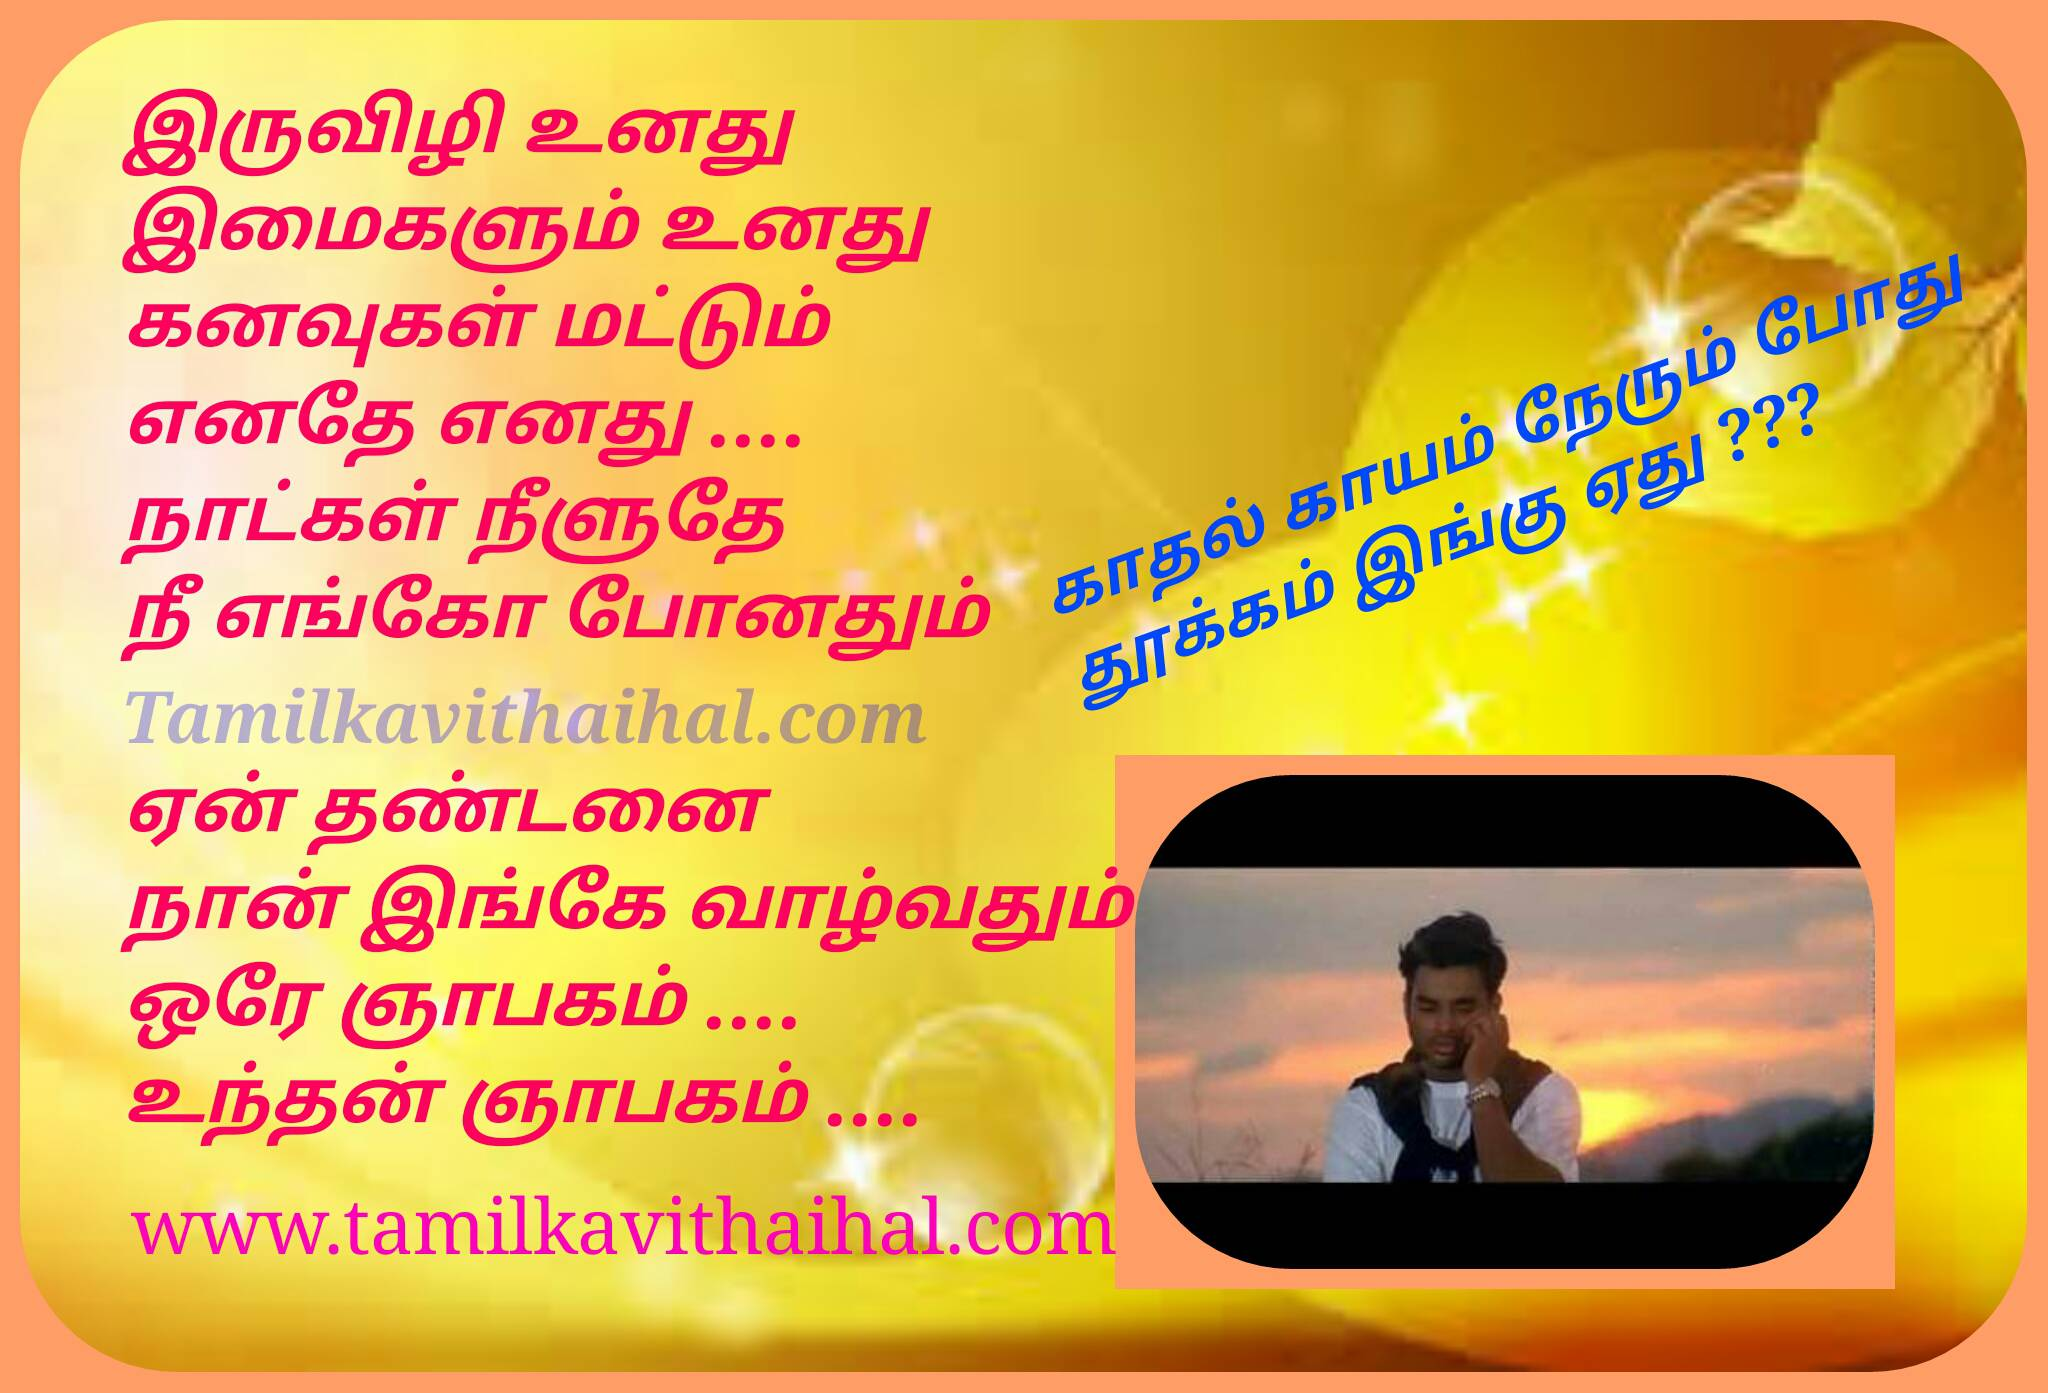 Madhavan minnalae sogam love song quotes iruvili unathu harris jayaraj thamarai lyrics